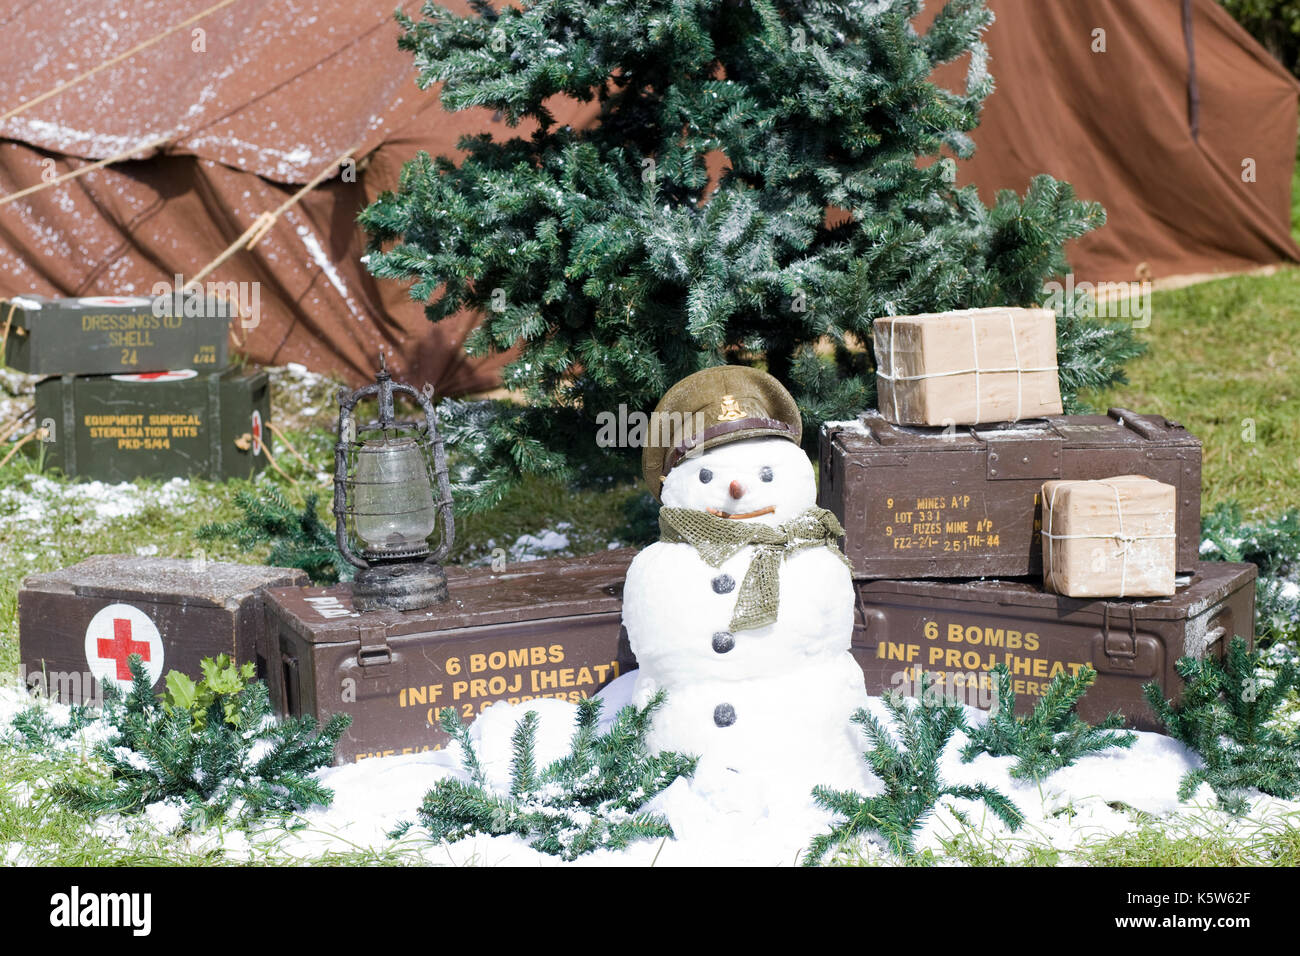 christmastime in the trenches snowman and christmas tree surrounded by ammunition stock image - Christmas Bombings